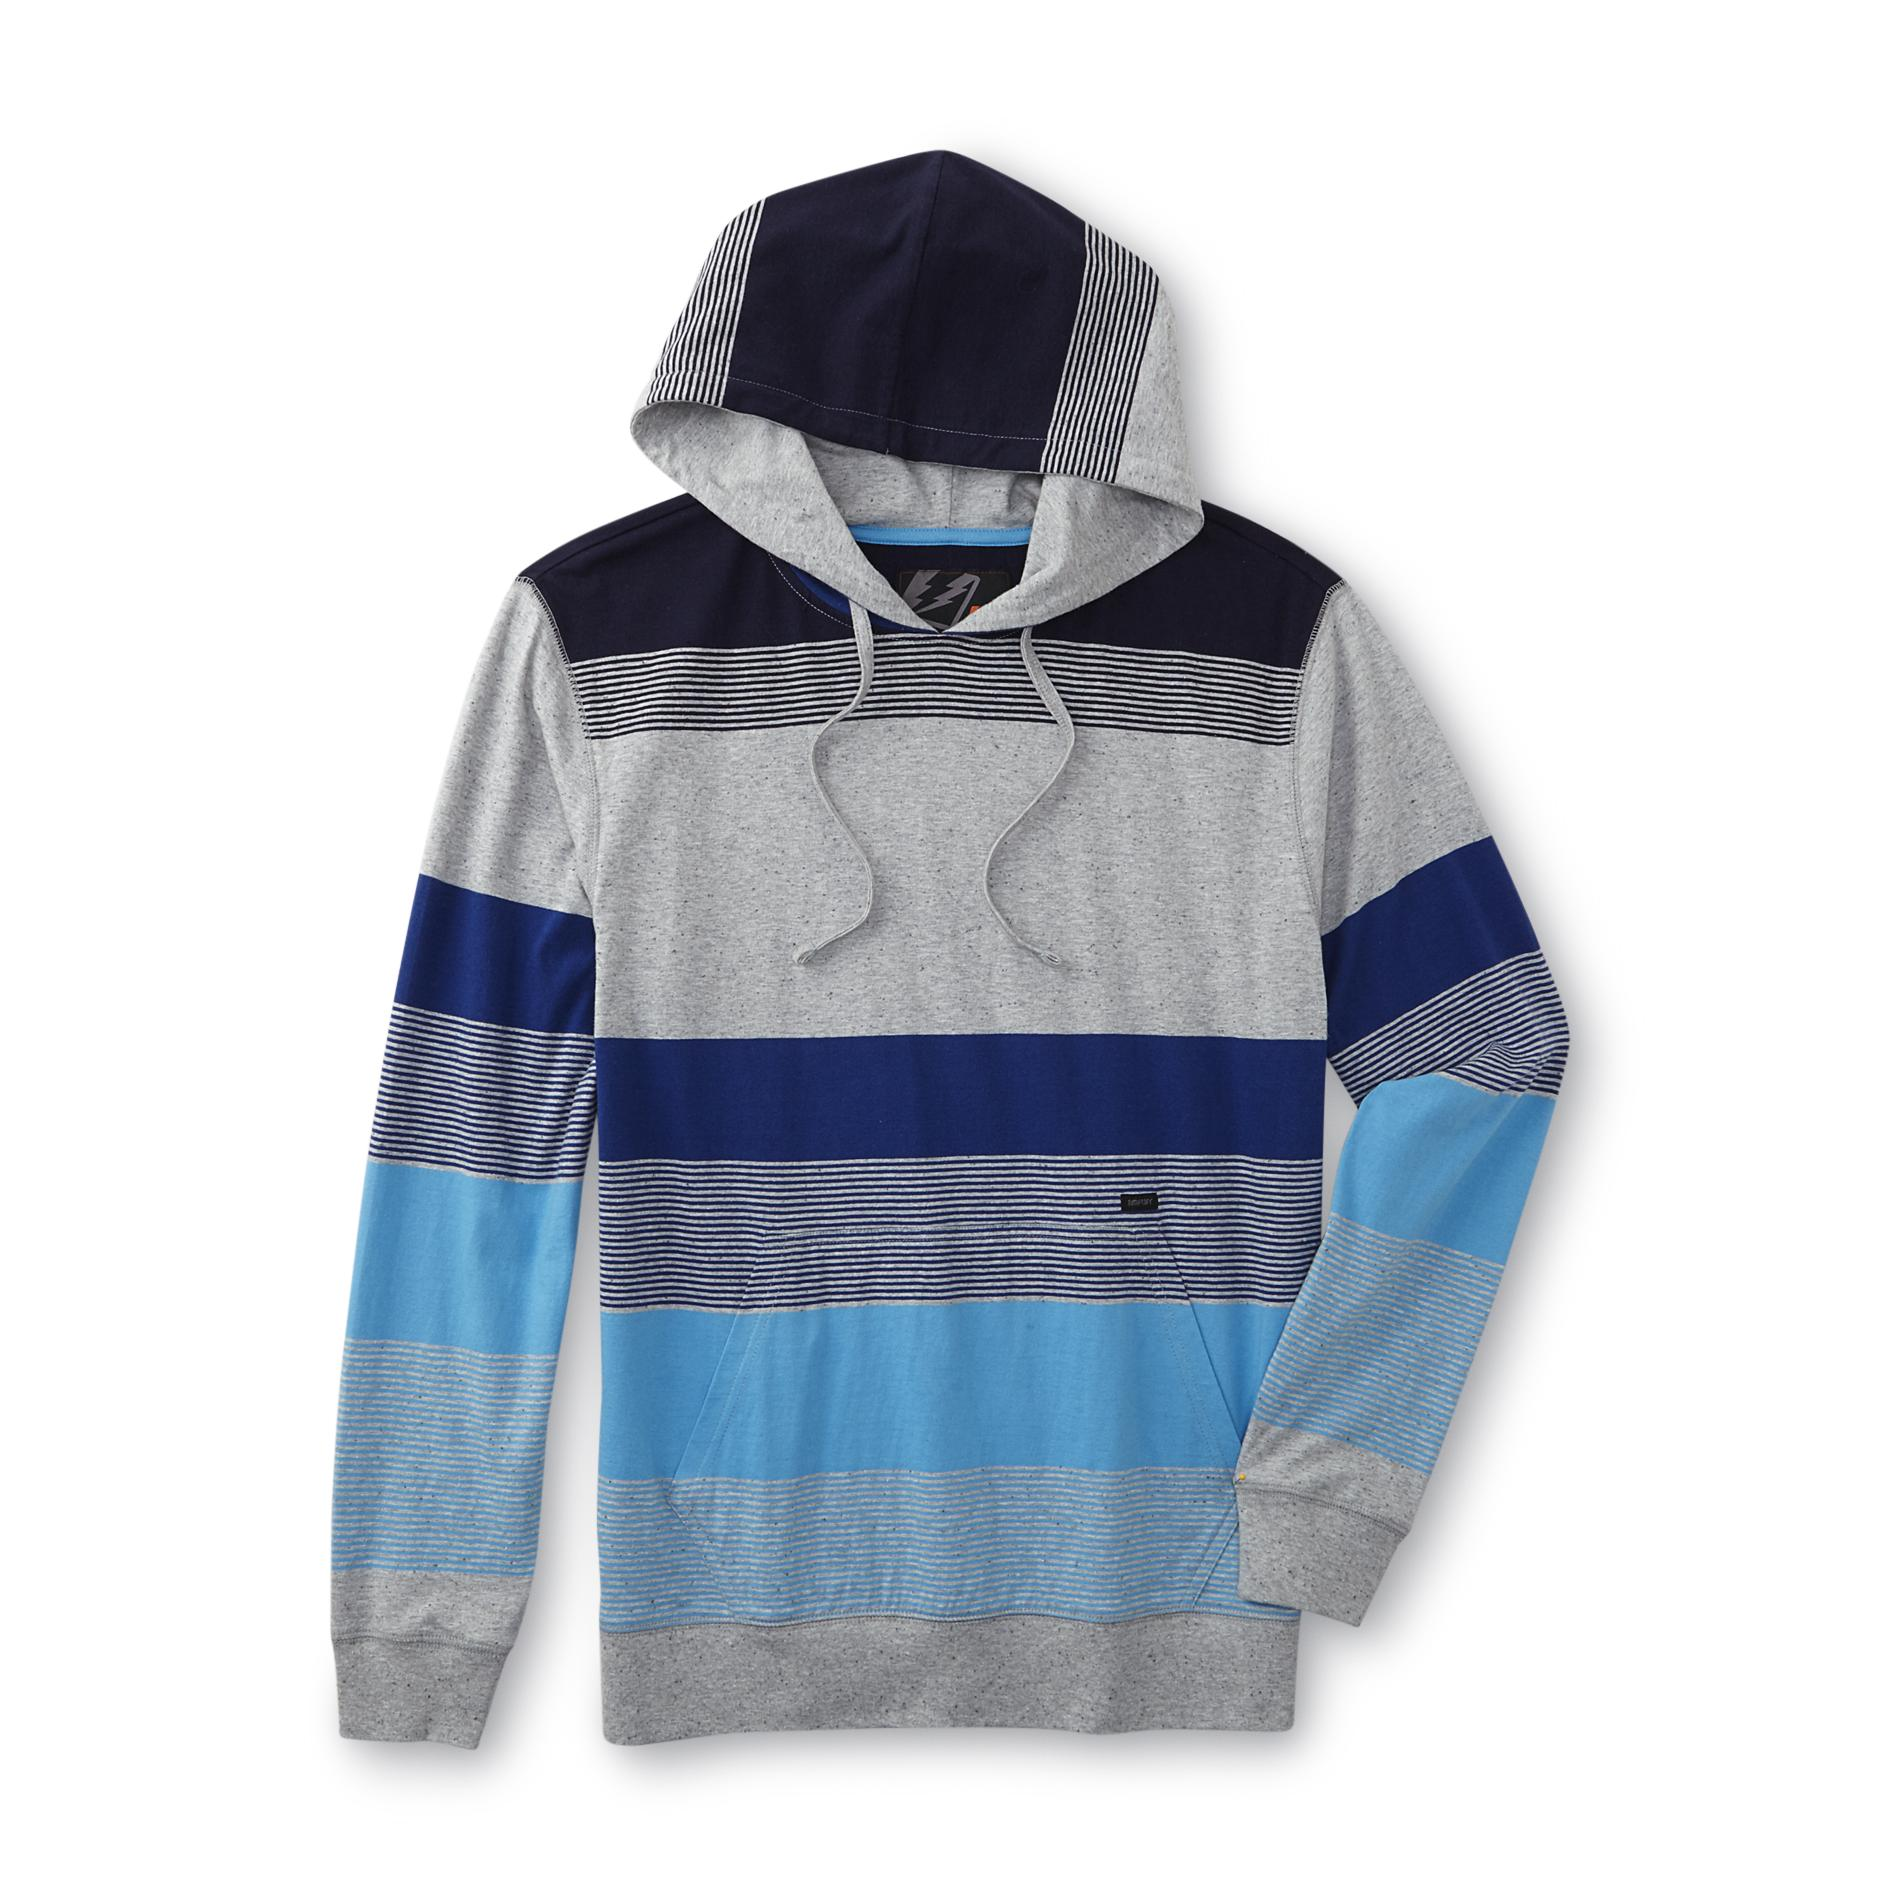 Amplify Young Men's Hooded Shirt - Striped